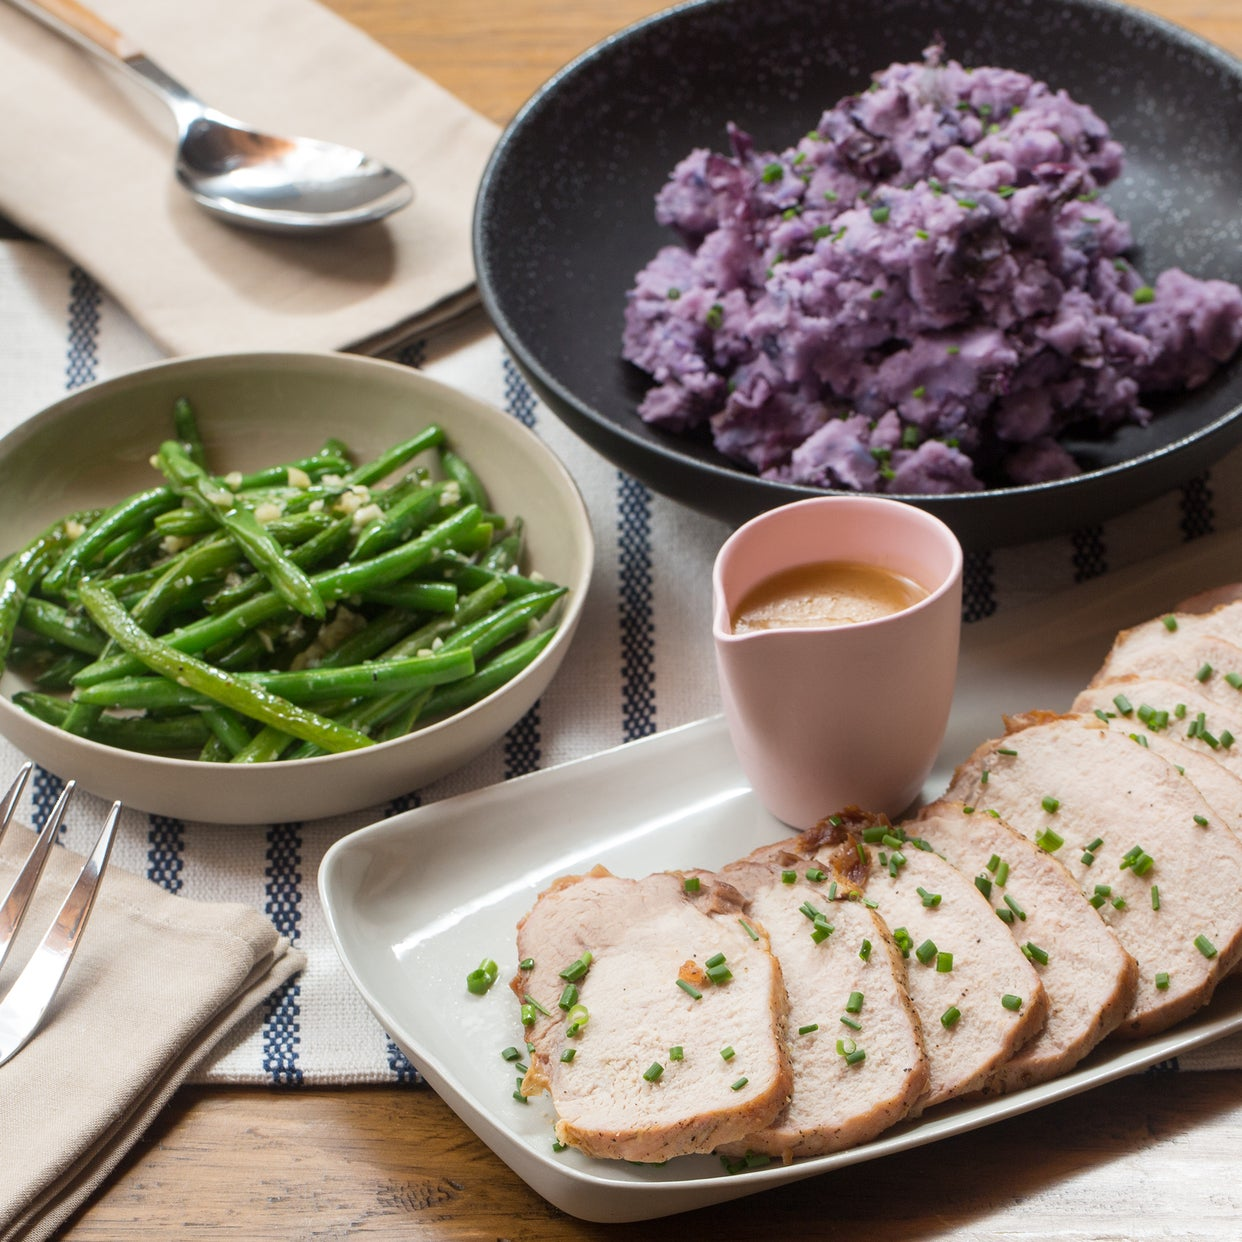 Roast Pork & Pan Sauce with Mashed Purple Potatoes & Sautéed Green Beans